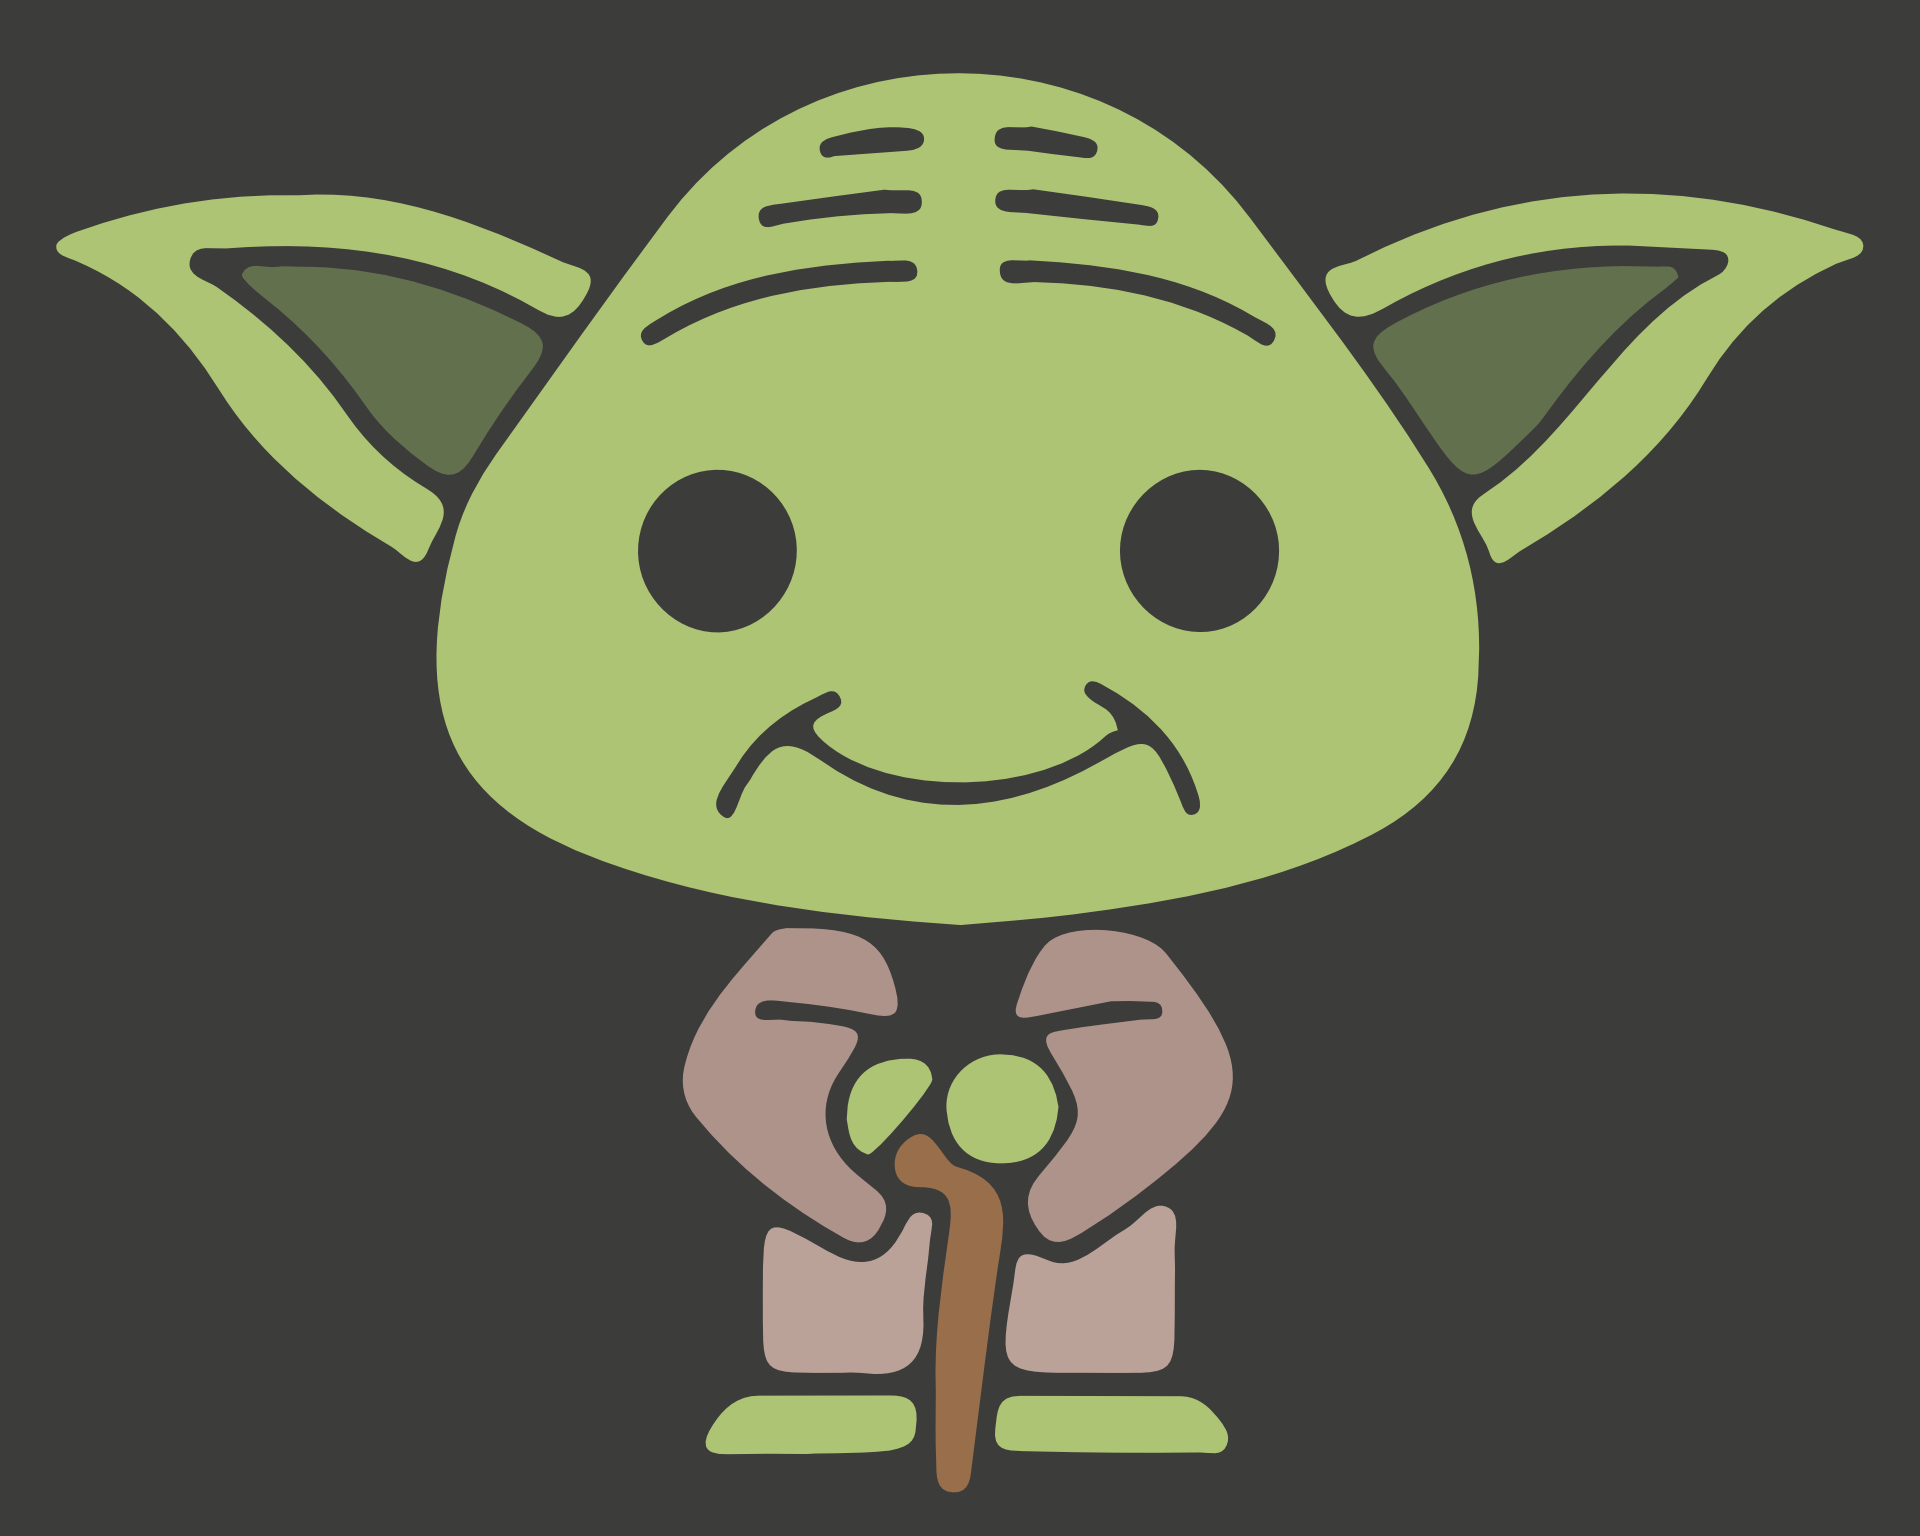 Yoda, Jedi, Star wars, die Star Wars, Kraft - Wallpaper HD - Prof.-falken.com